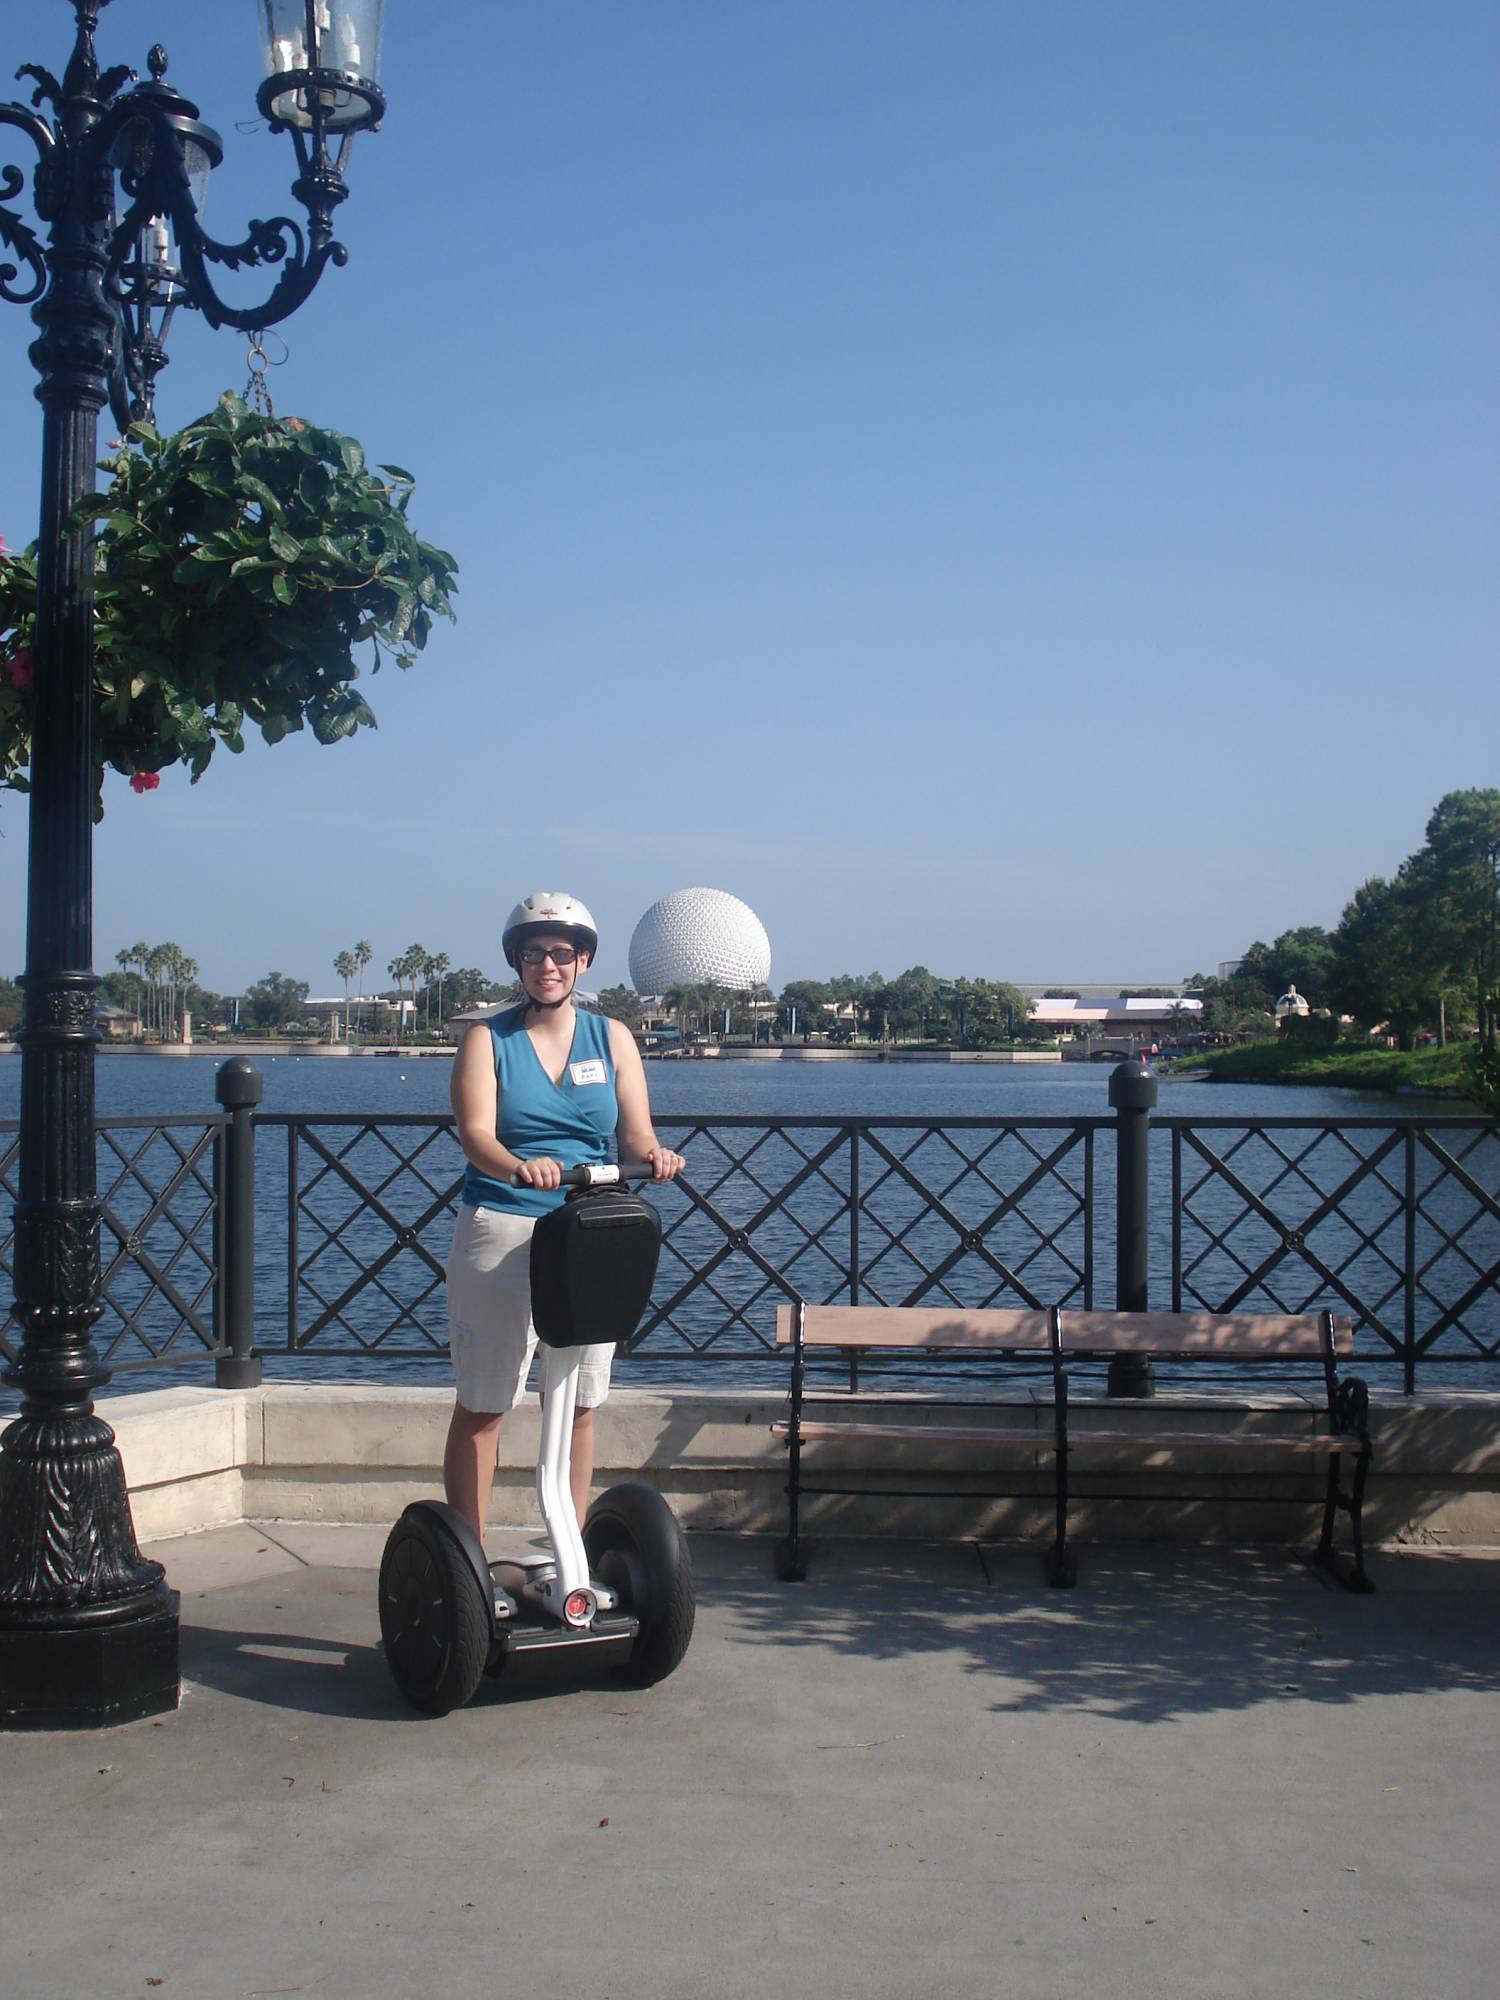 Tour the World Showcase on a Segway |PassPorter.com